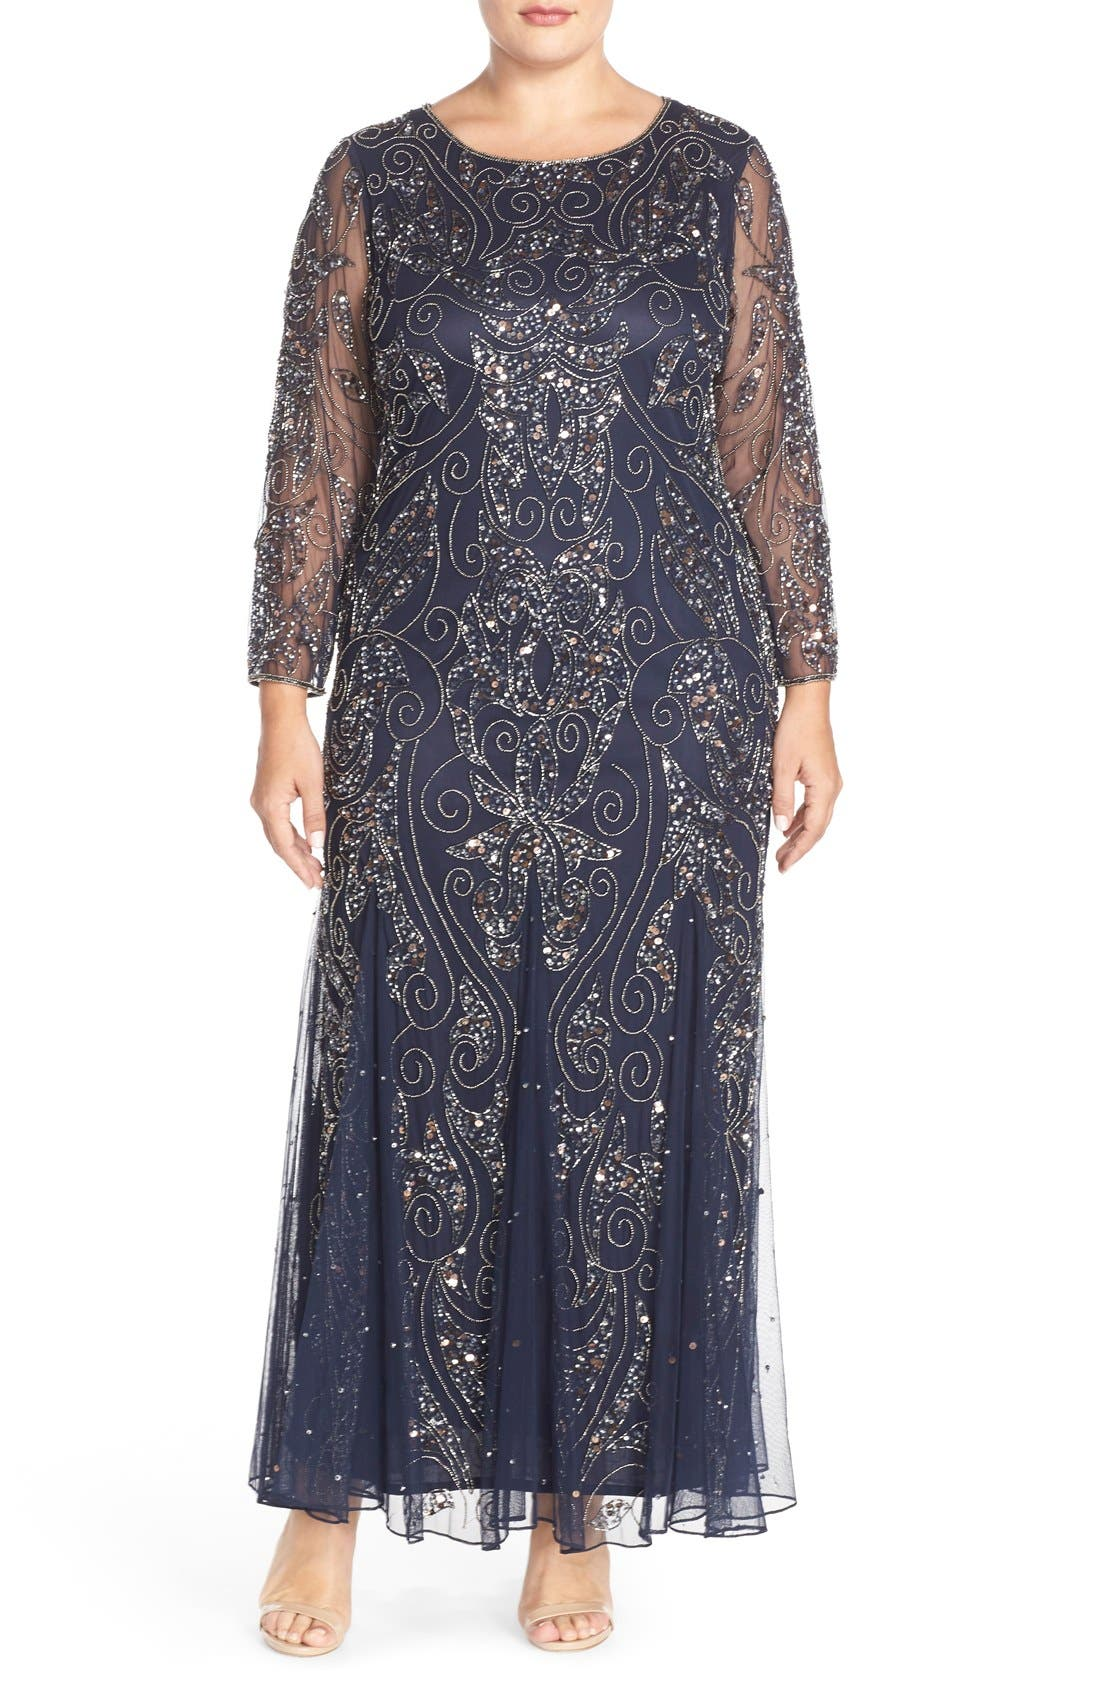 20s Dresses | 1920s Dresses for Sale Plus Size Womens Pisarro Nights Embellished Three Quarter Sleeve Gown Size 14W - Blue $238.00 AT vintagedancer.com